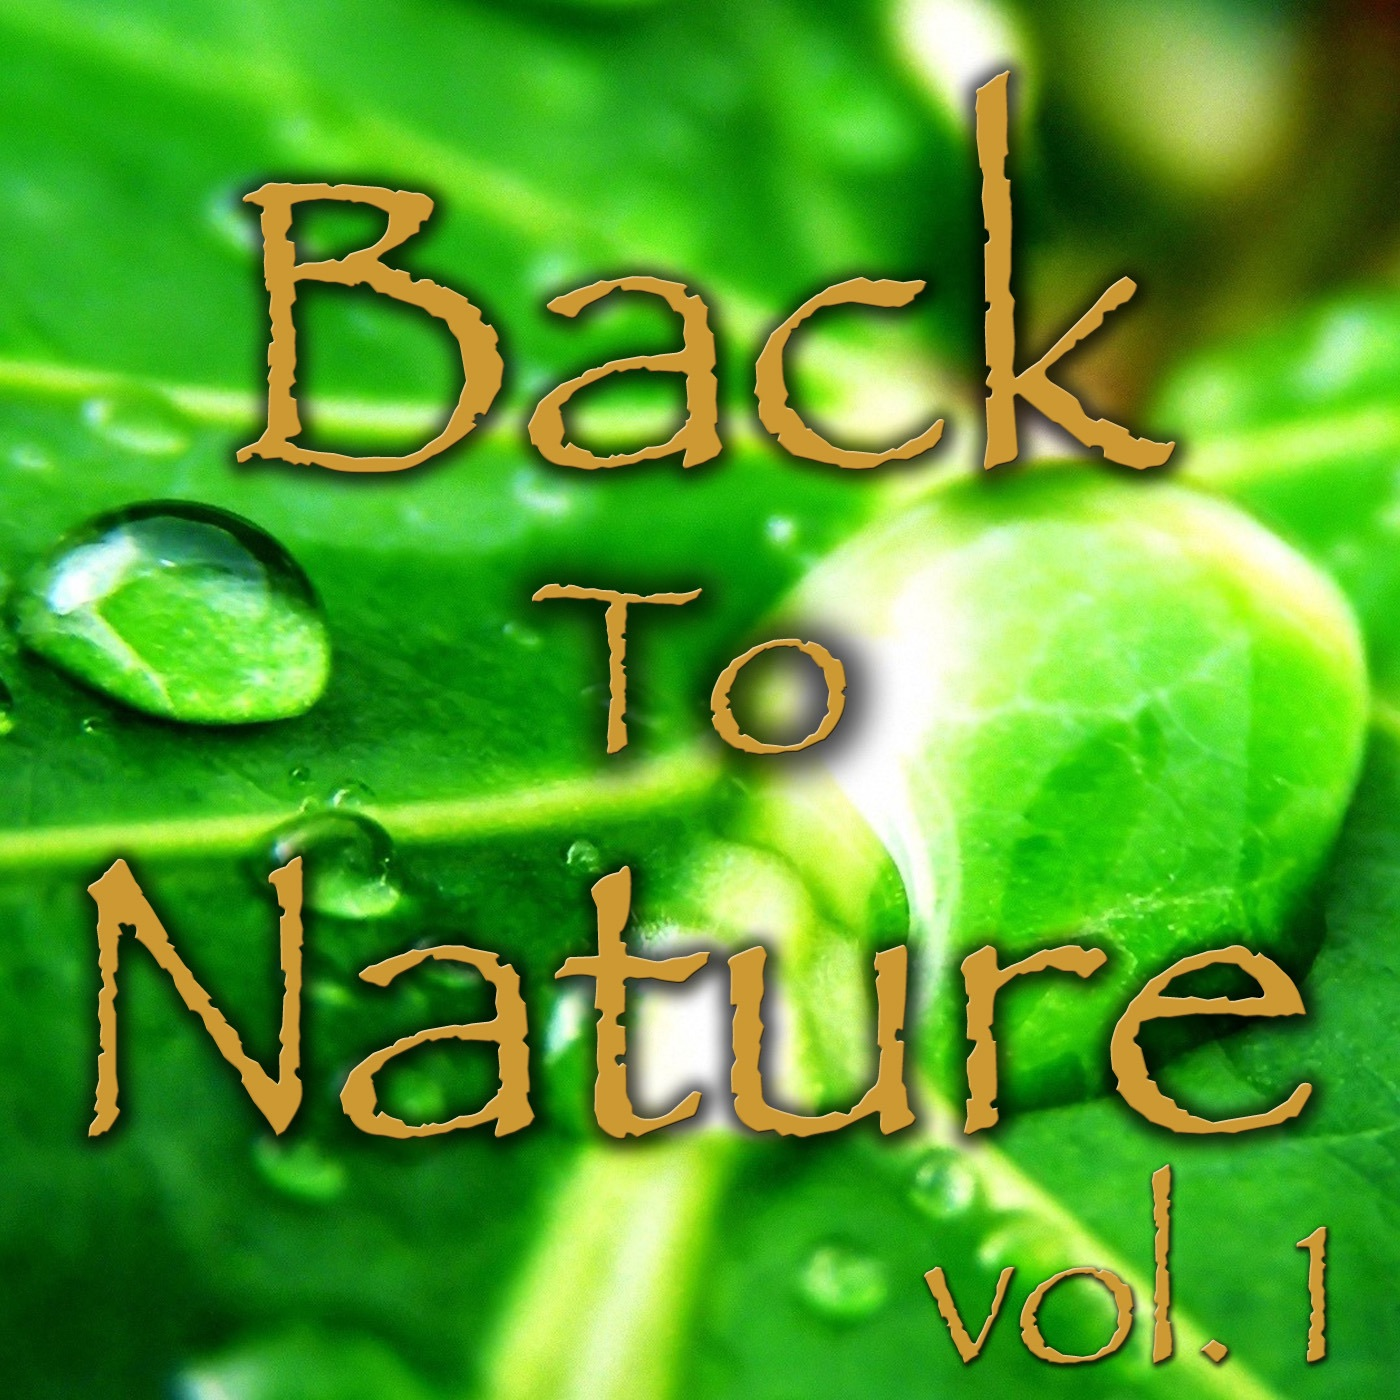 Back To Nature, Vol. 1